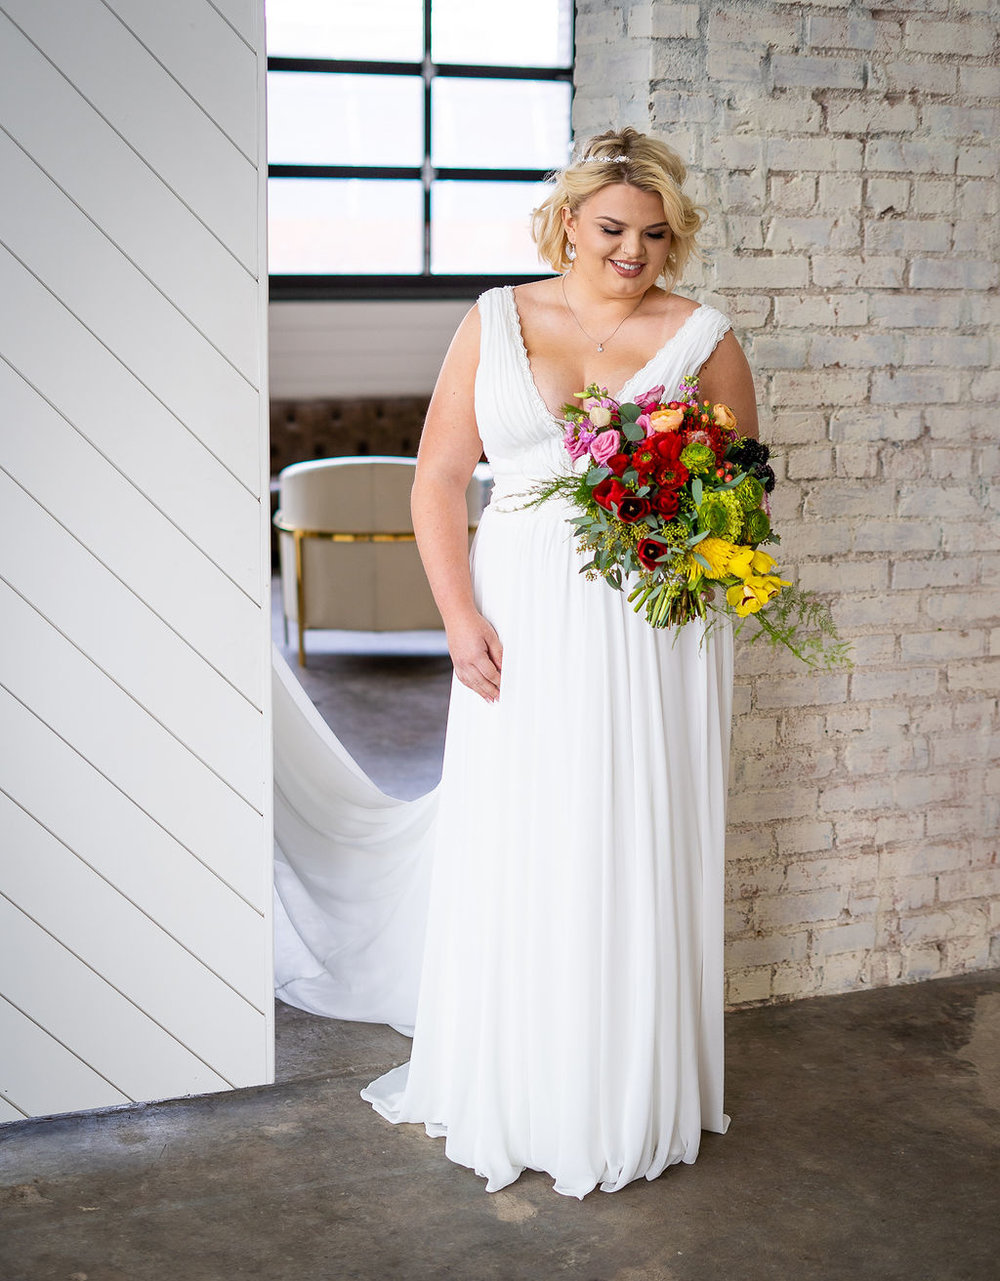 Plus Size Bride | Eddy K | Summerside Photography